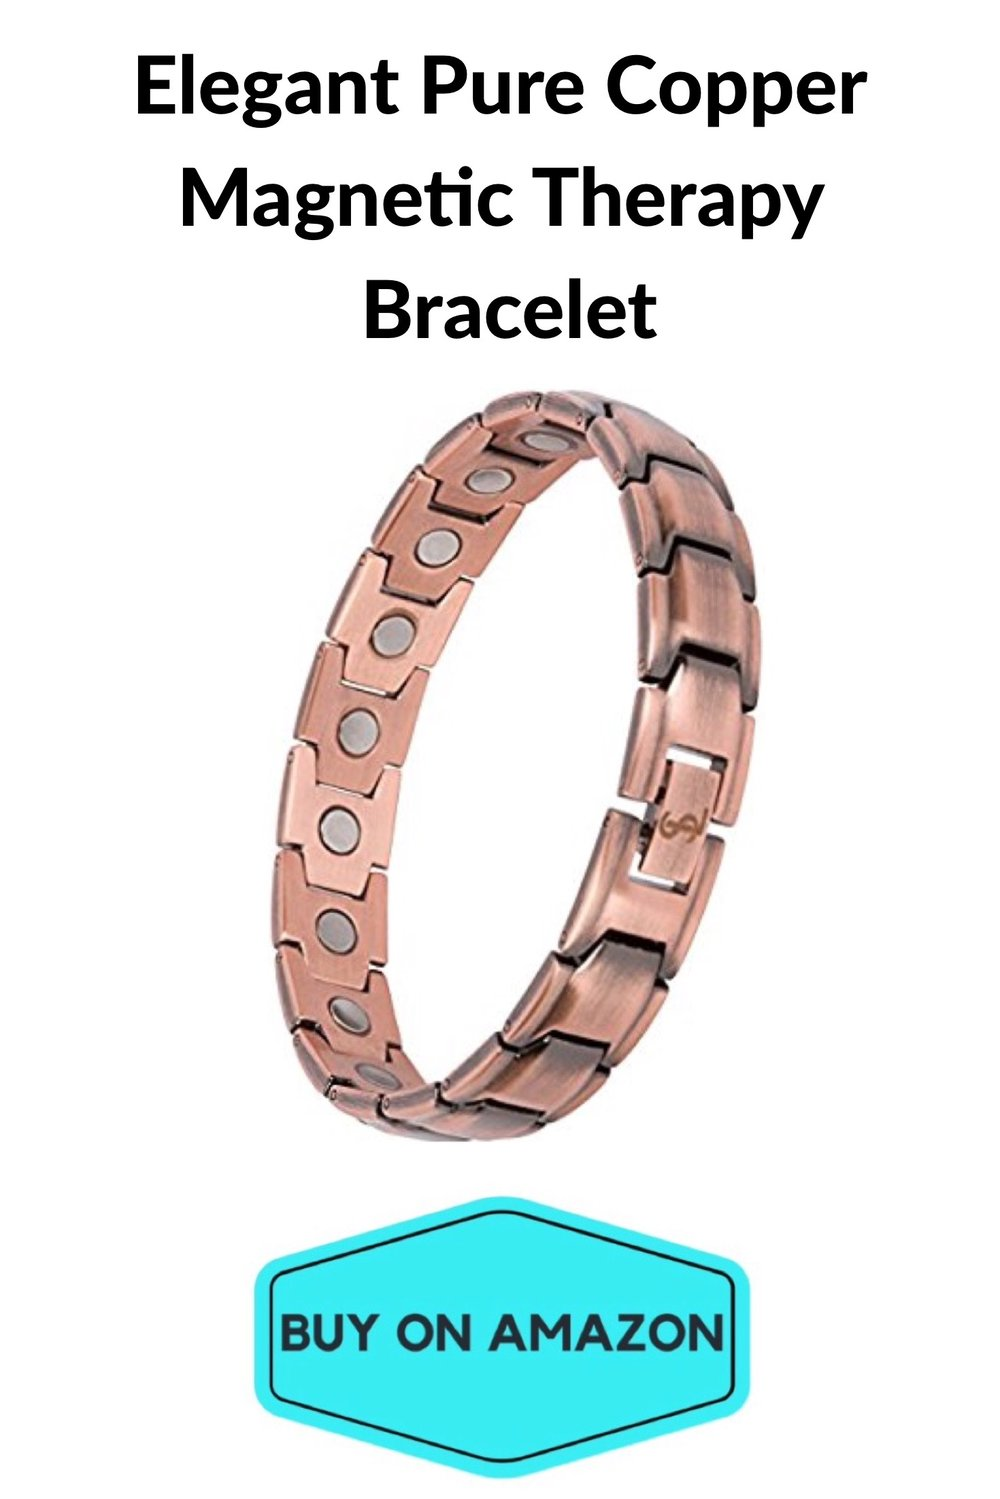 Elegant Pure Copper Magnetic Therapy Bracelet